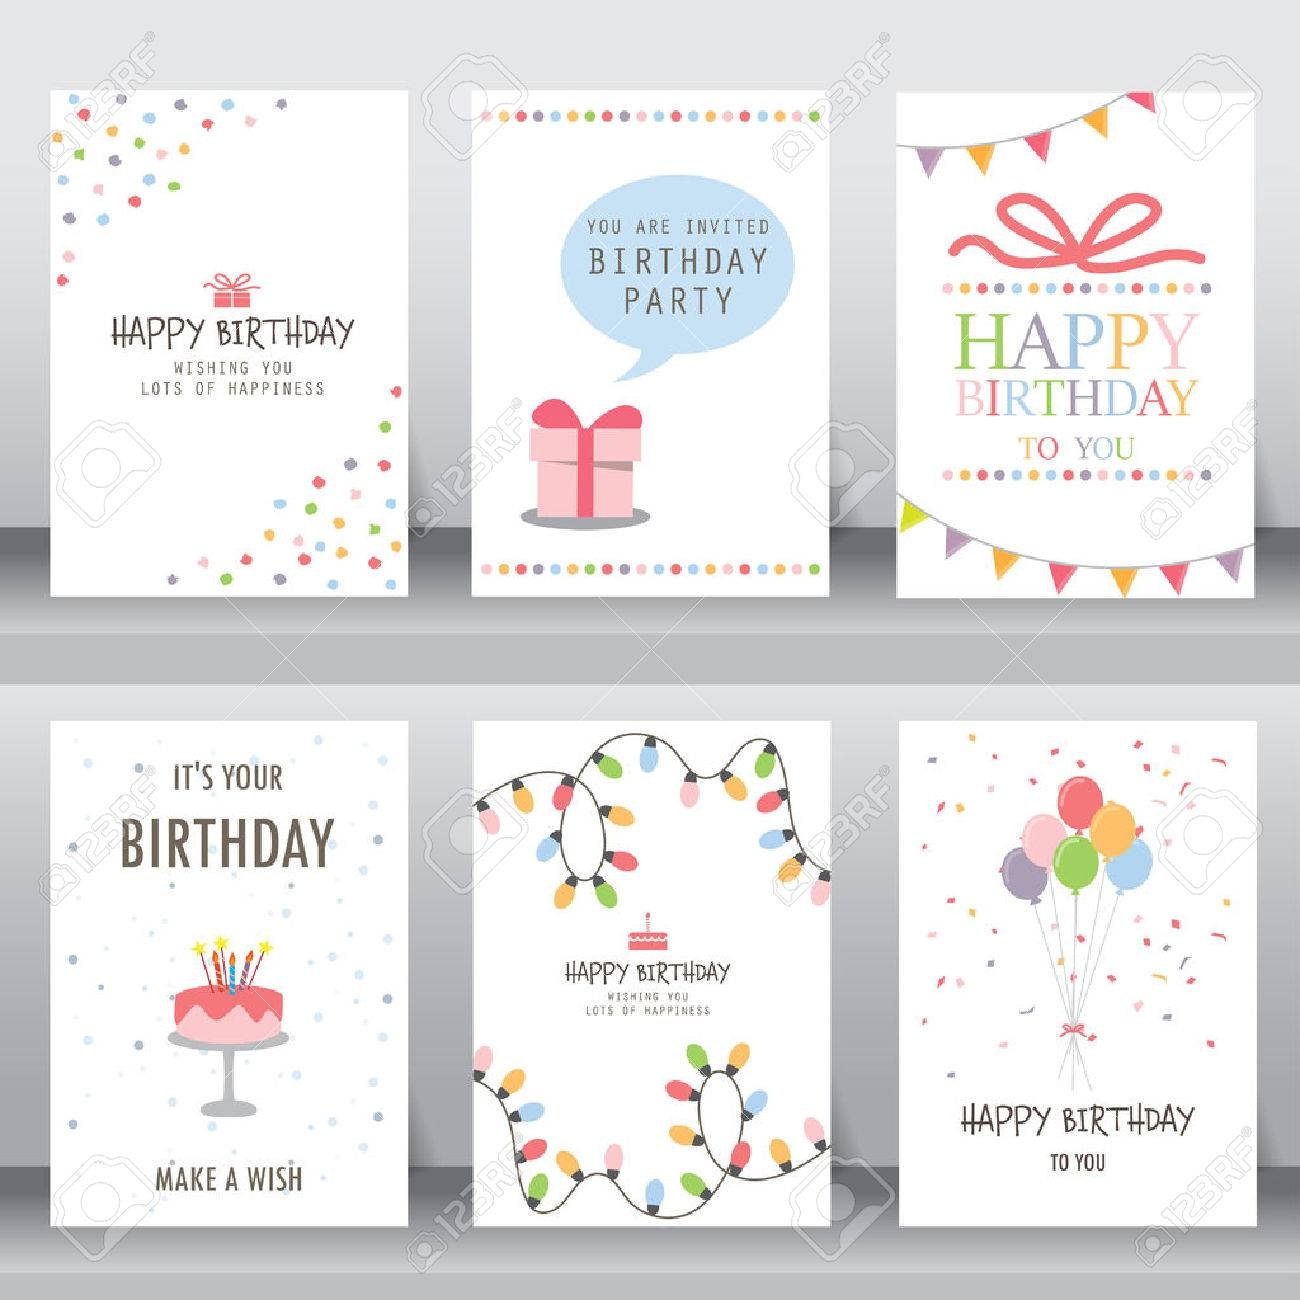 happy birthday, holiday, christmas greeting and invitation card. there are typography, gift boxes, confetti, cake and teddy bear. layout template in A4 size. vector illustration - 54279831